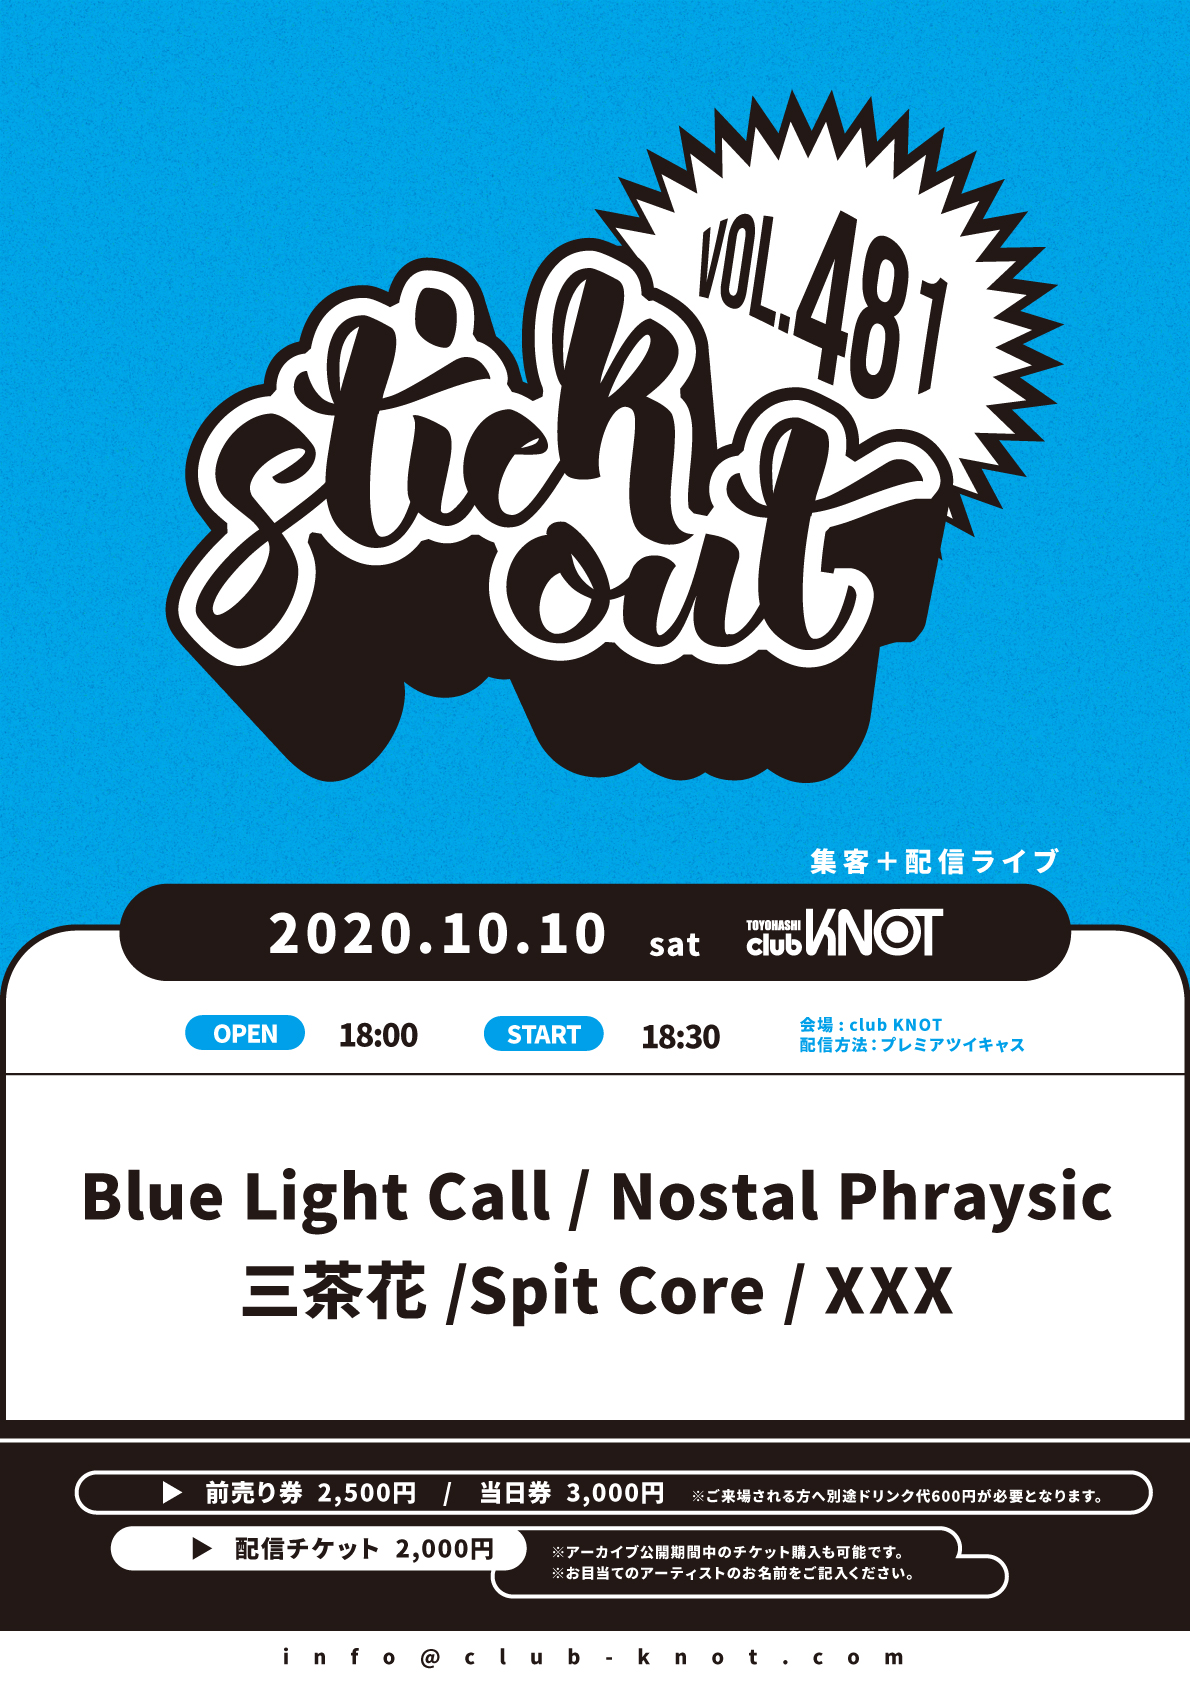 stick out vol.481